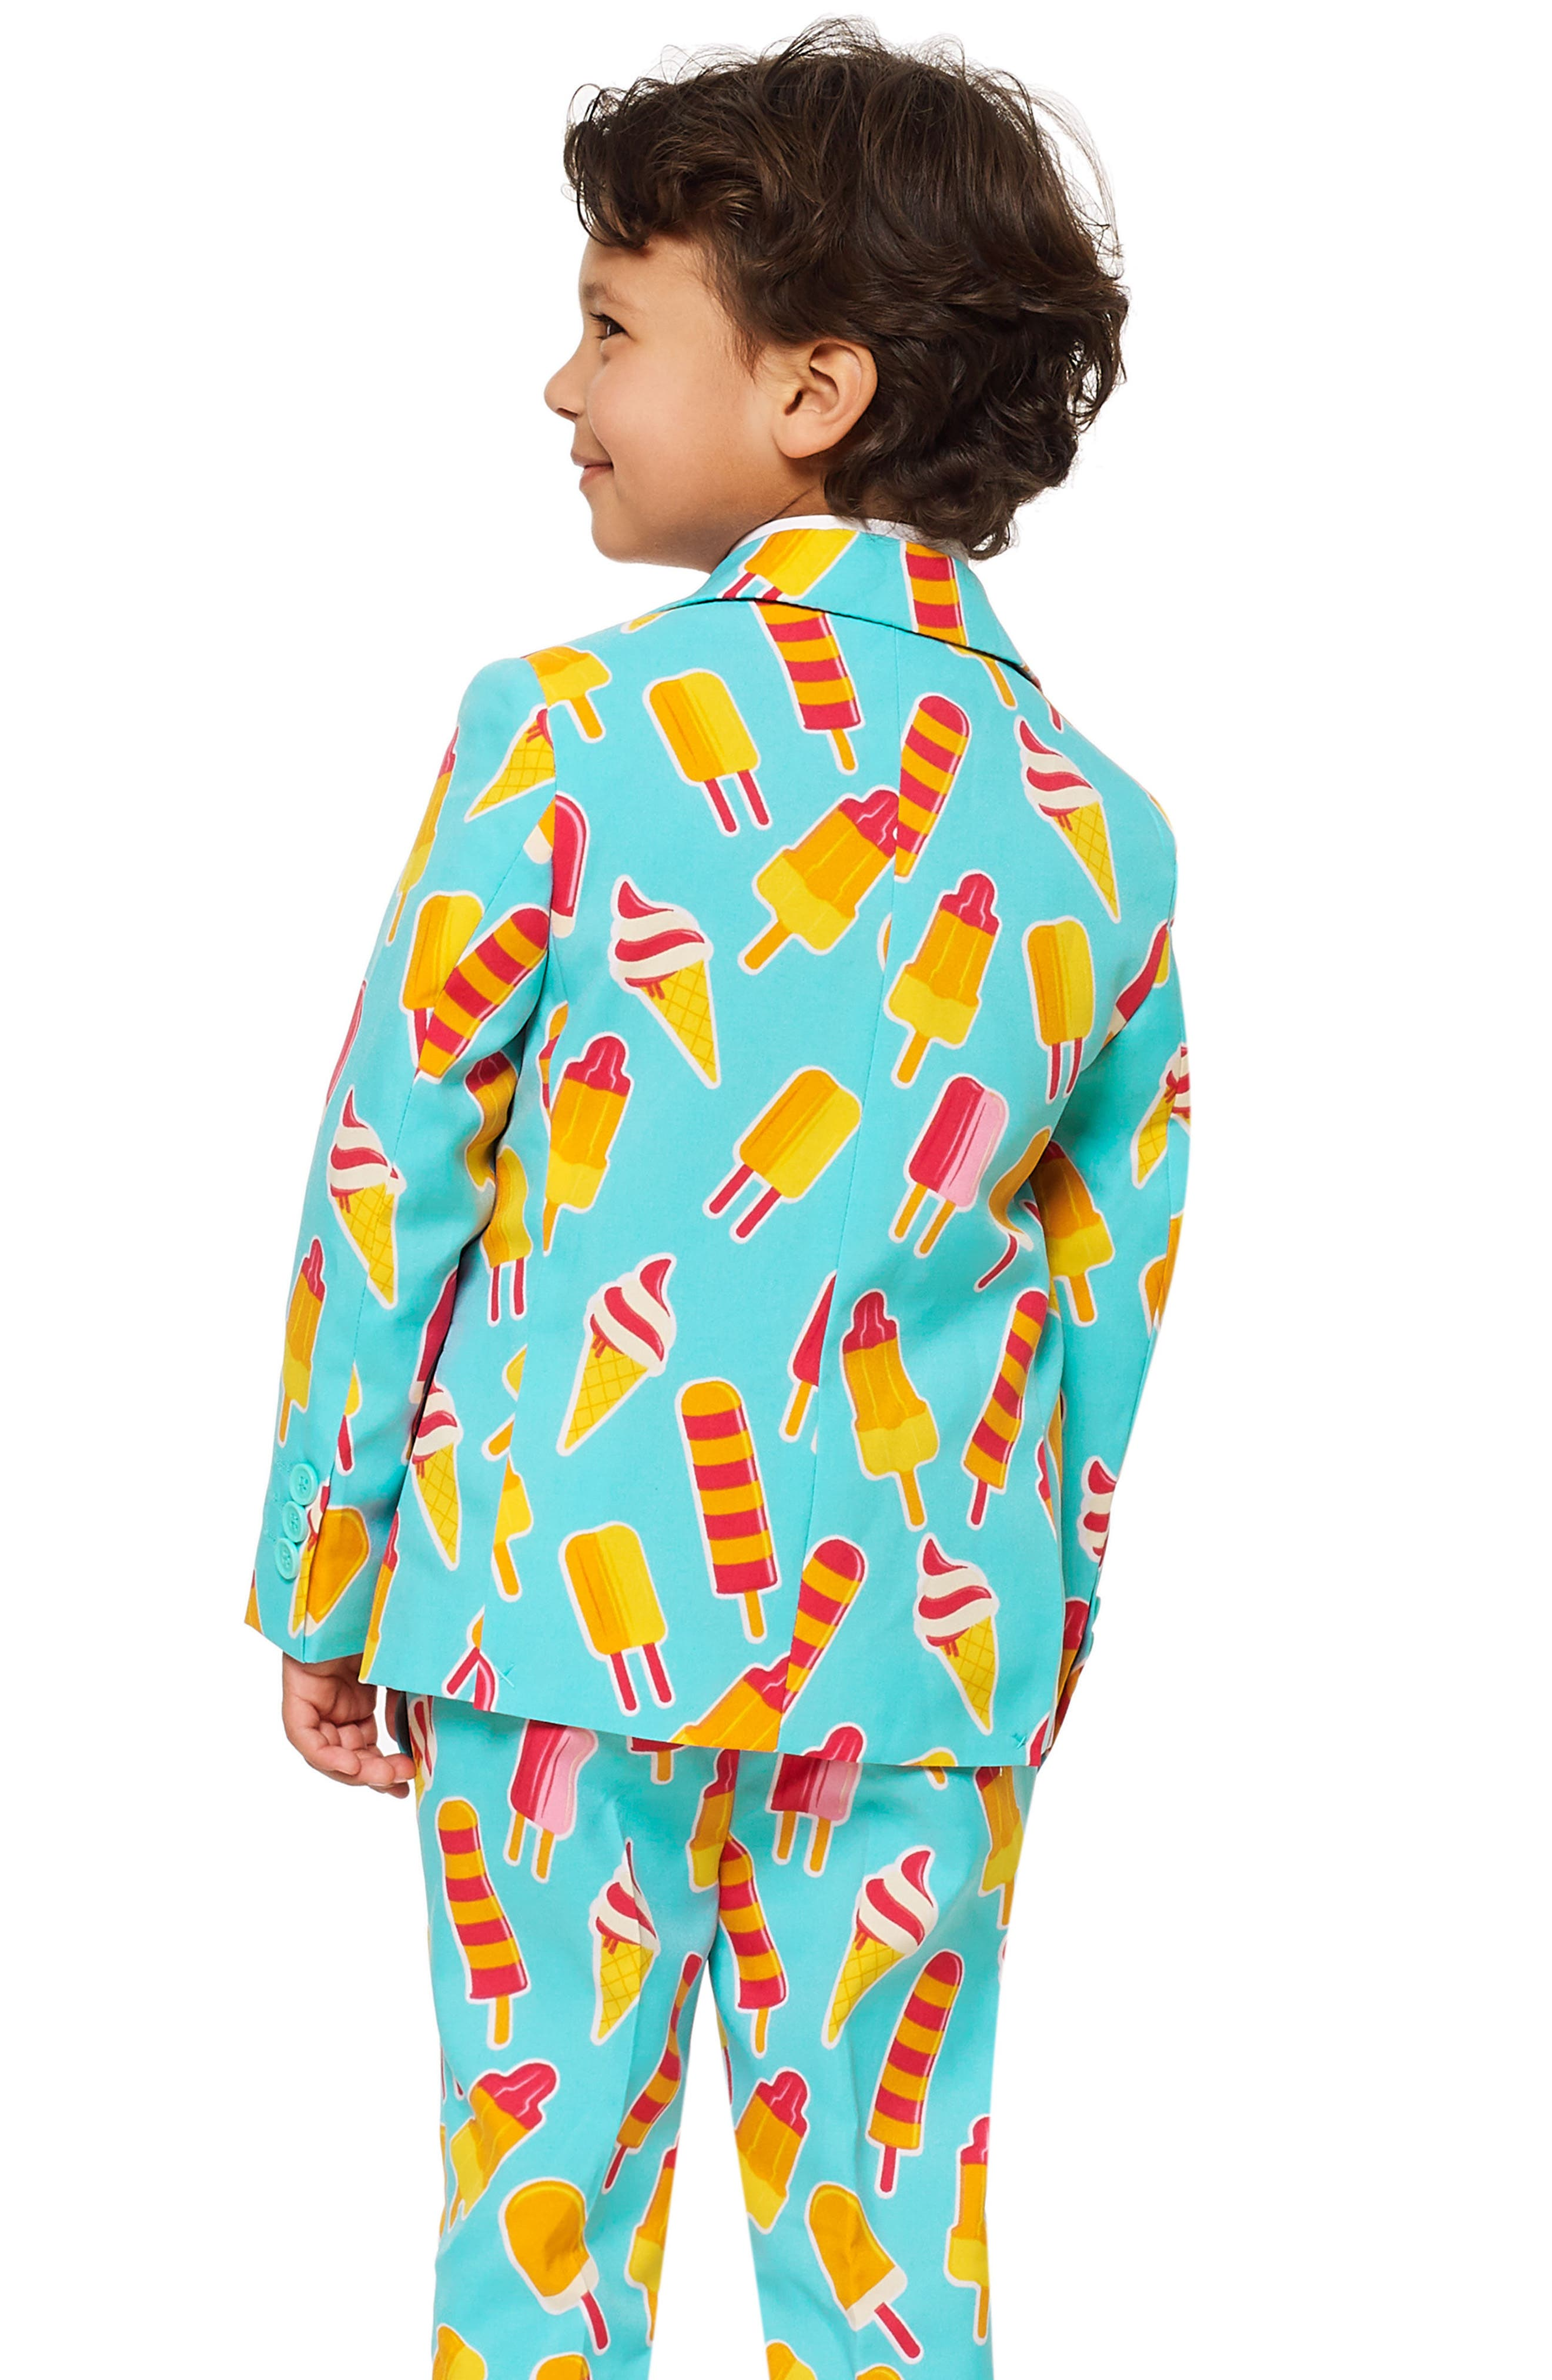 Cool Cones Two-Piece Suit with Tie,                             Alternate thumbnail 2, color,                             BLUE